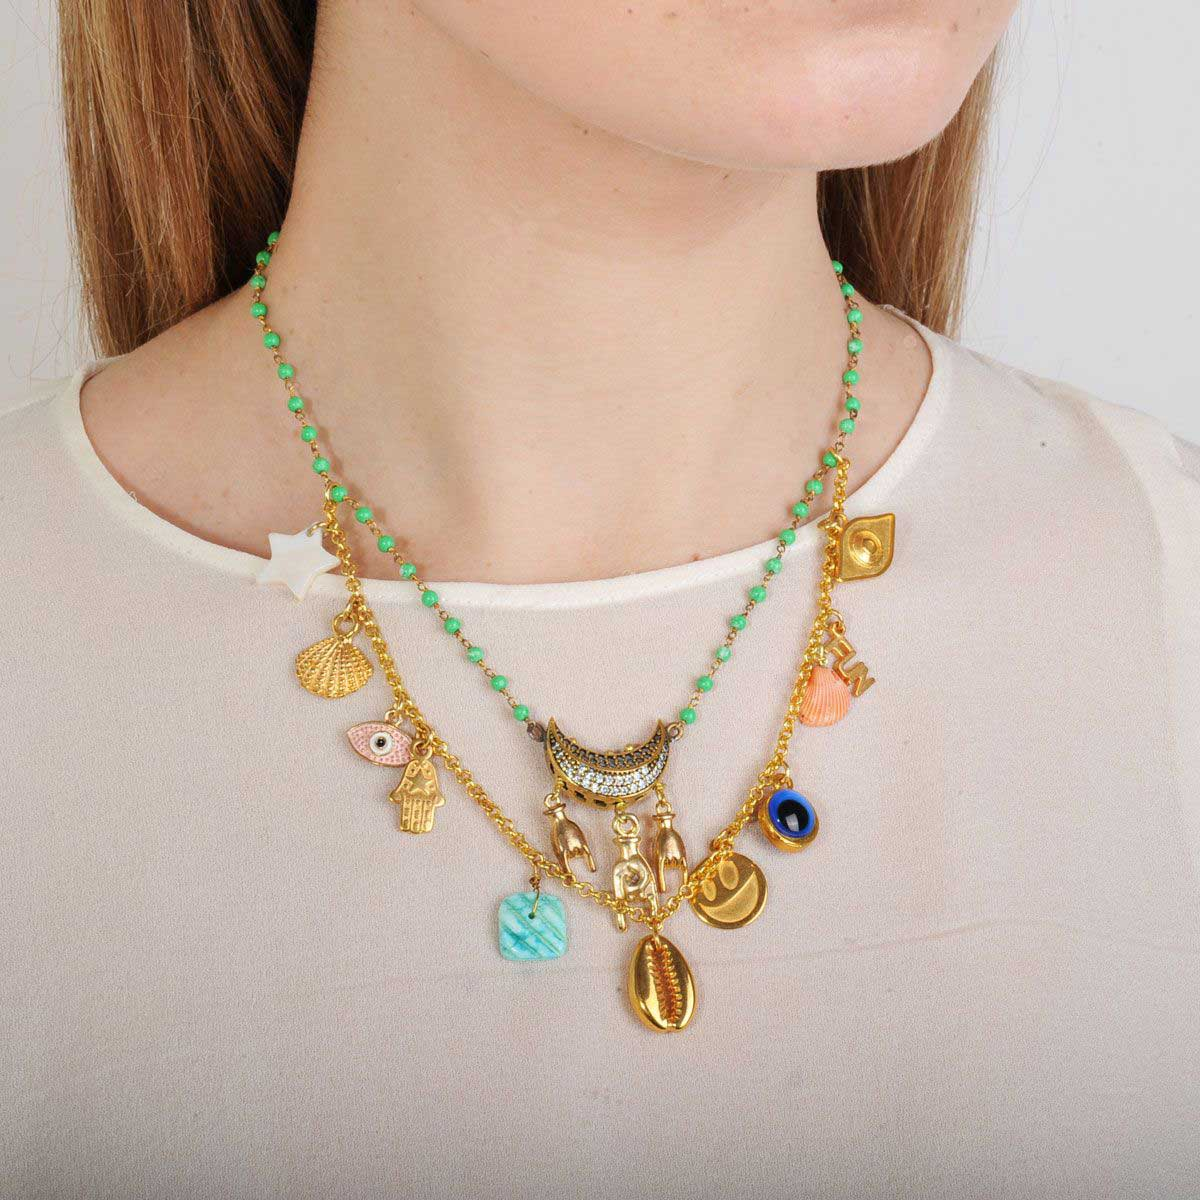 Double row short necklace with charms, shells and chrysoprase